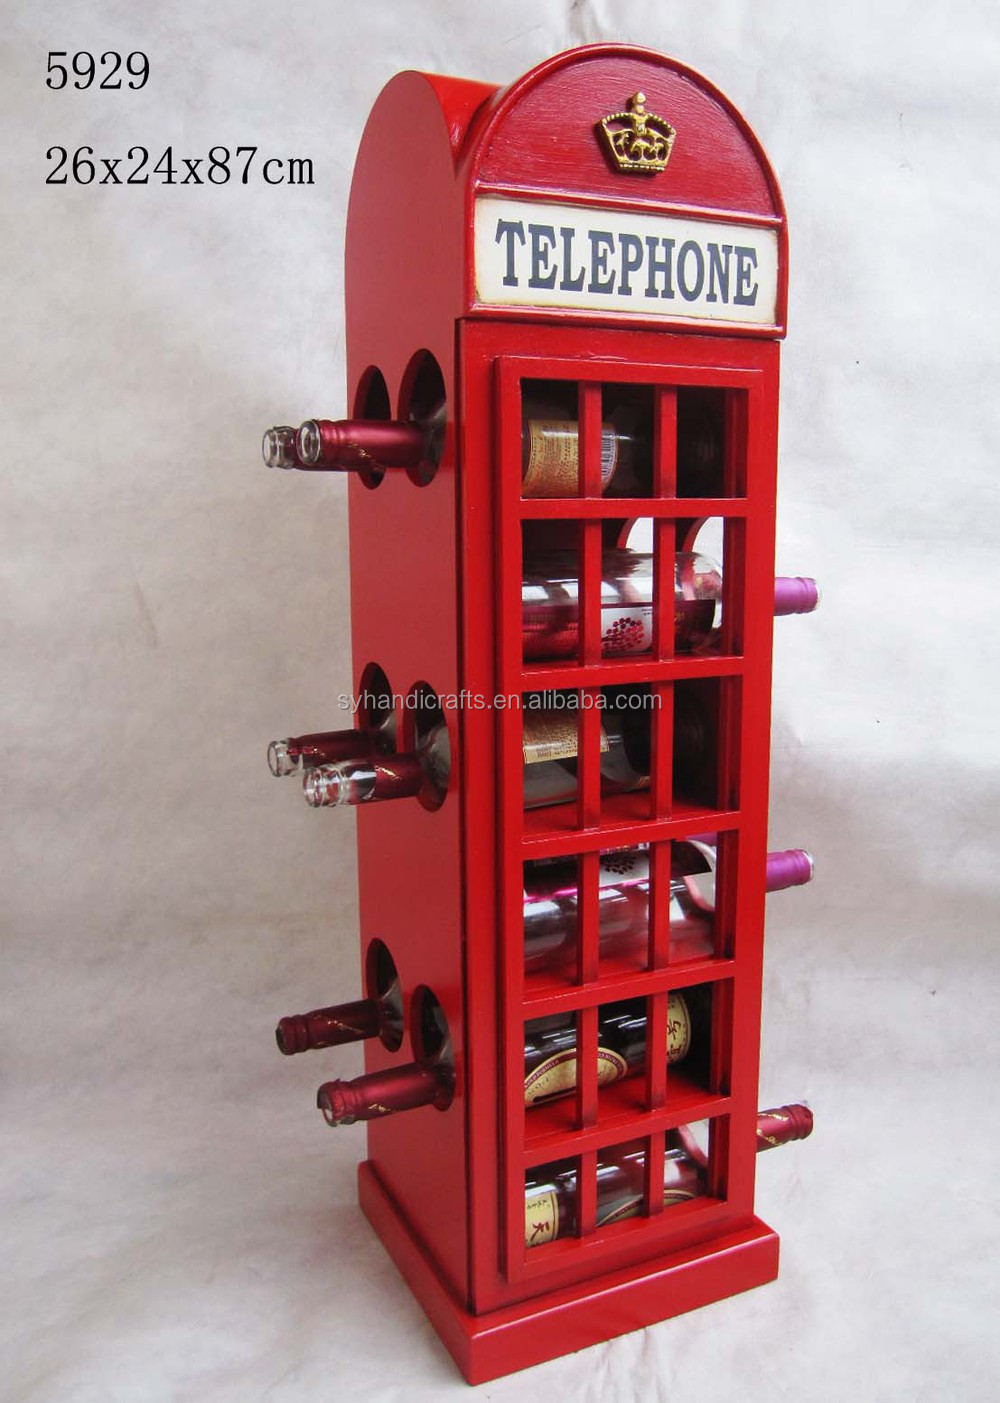 Home Furniture Wine Rack Vintage Classic Red London Telephone Booth Wood Wine Rack Cabinet For